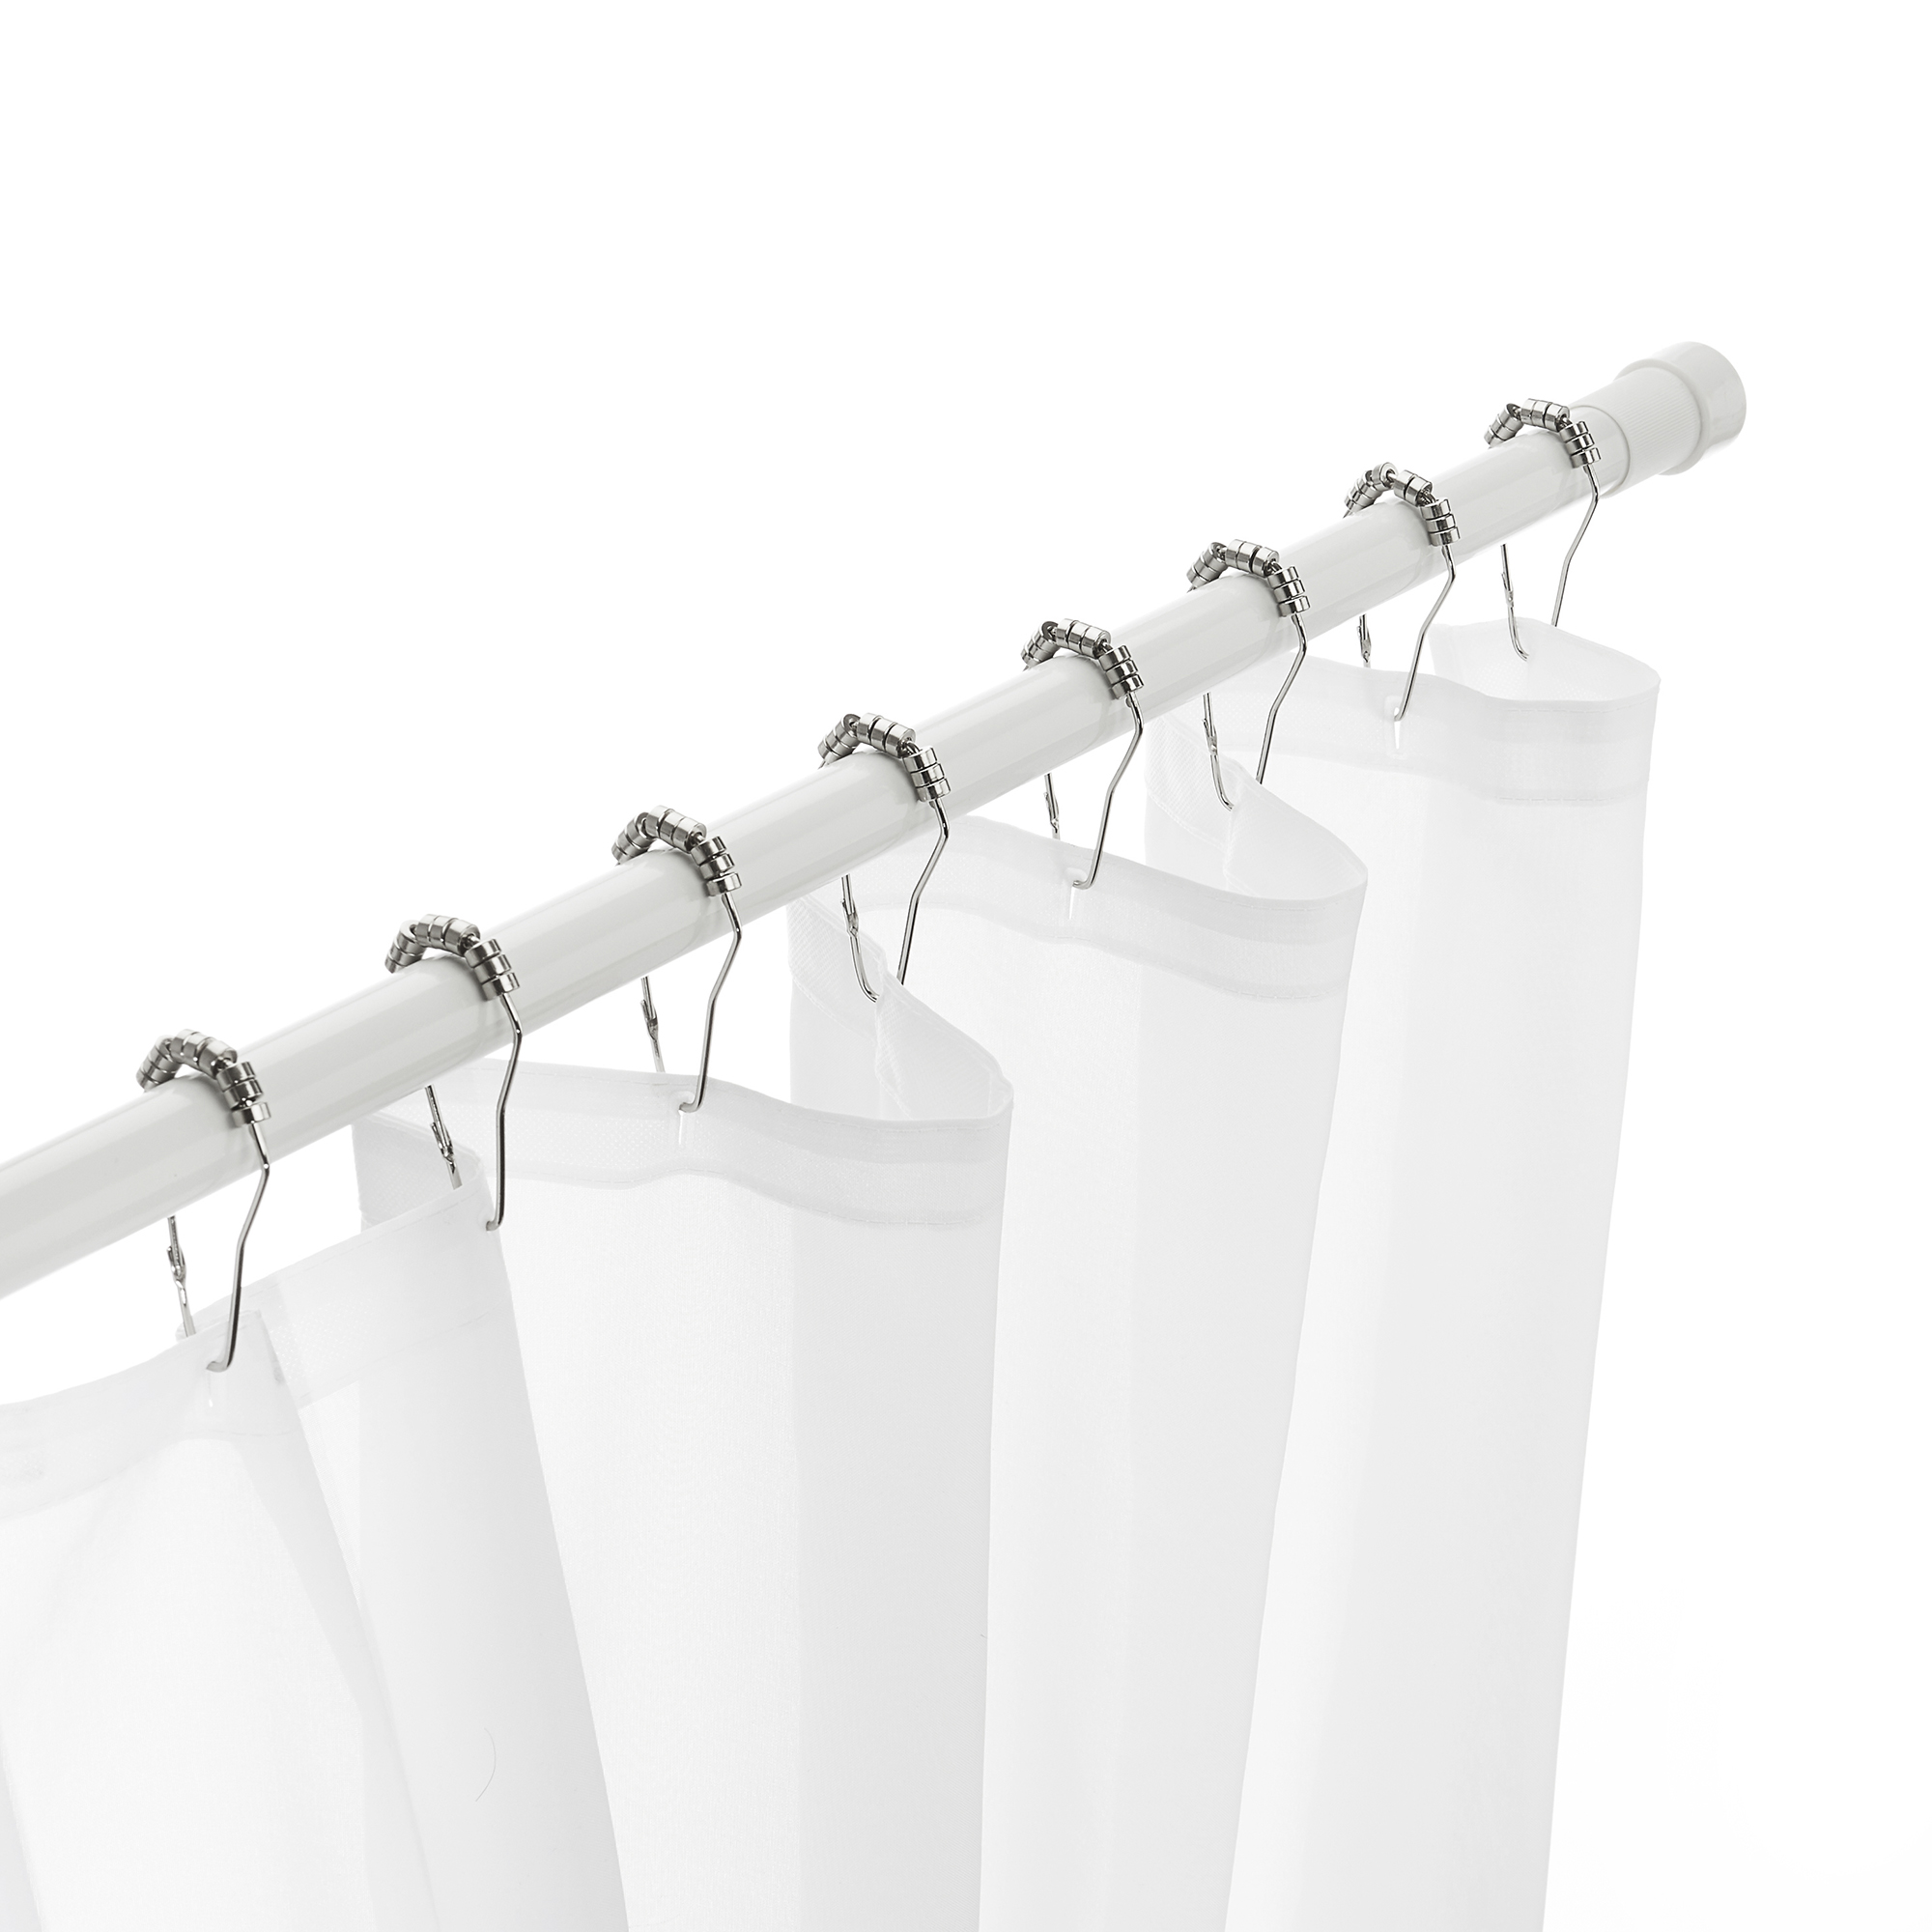 excell 46 86 adjustable glide n set tension shower curtain rod white